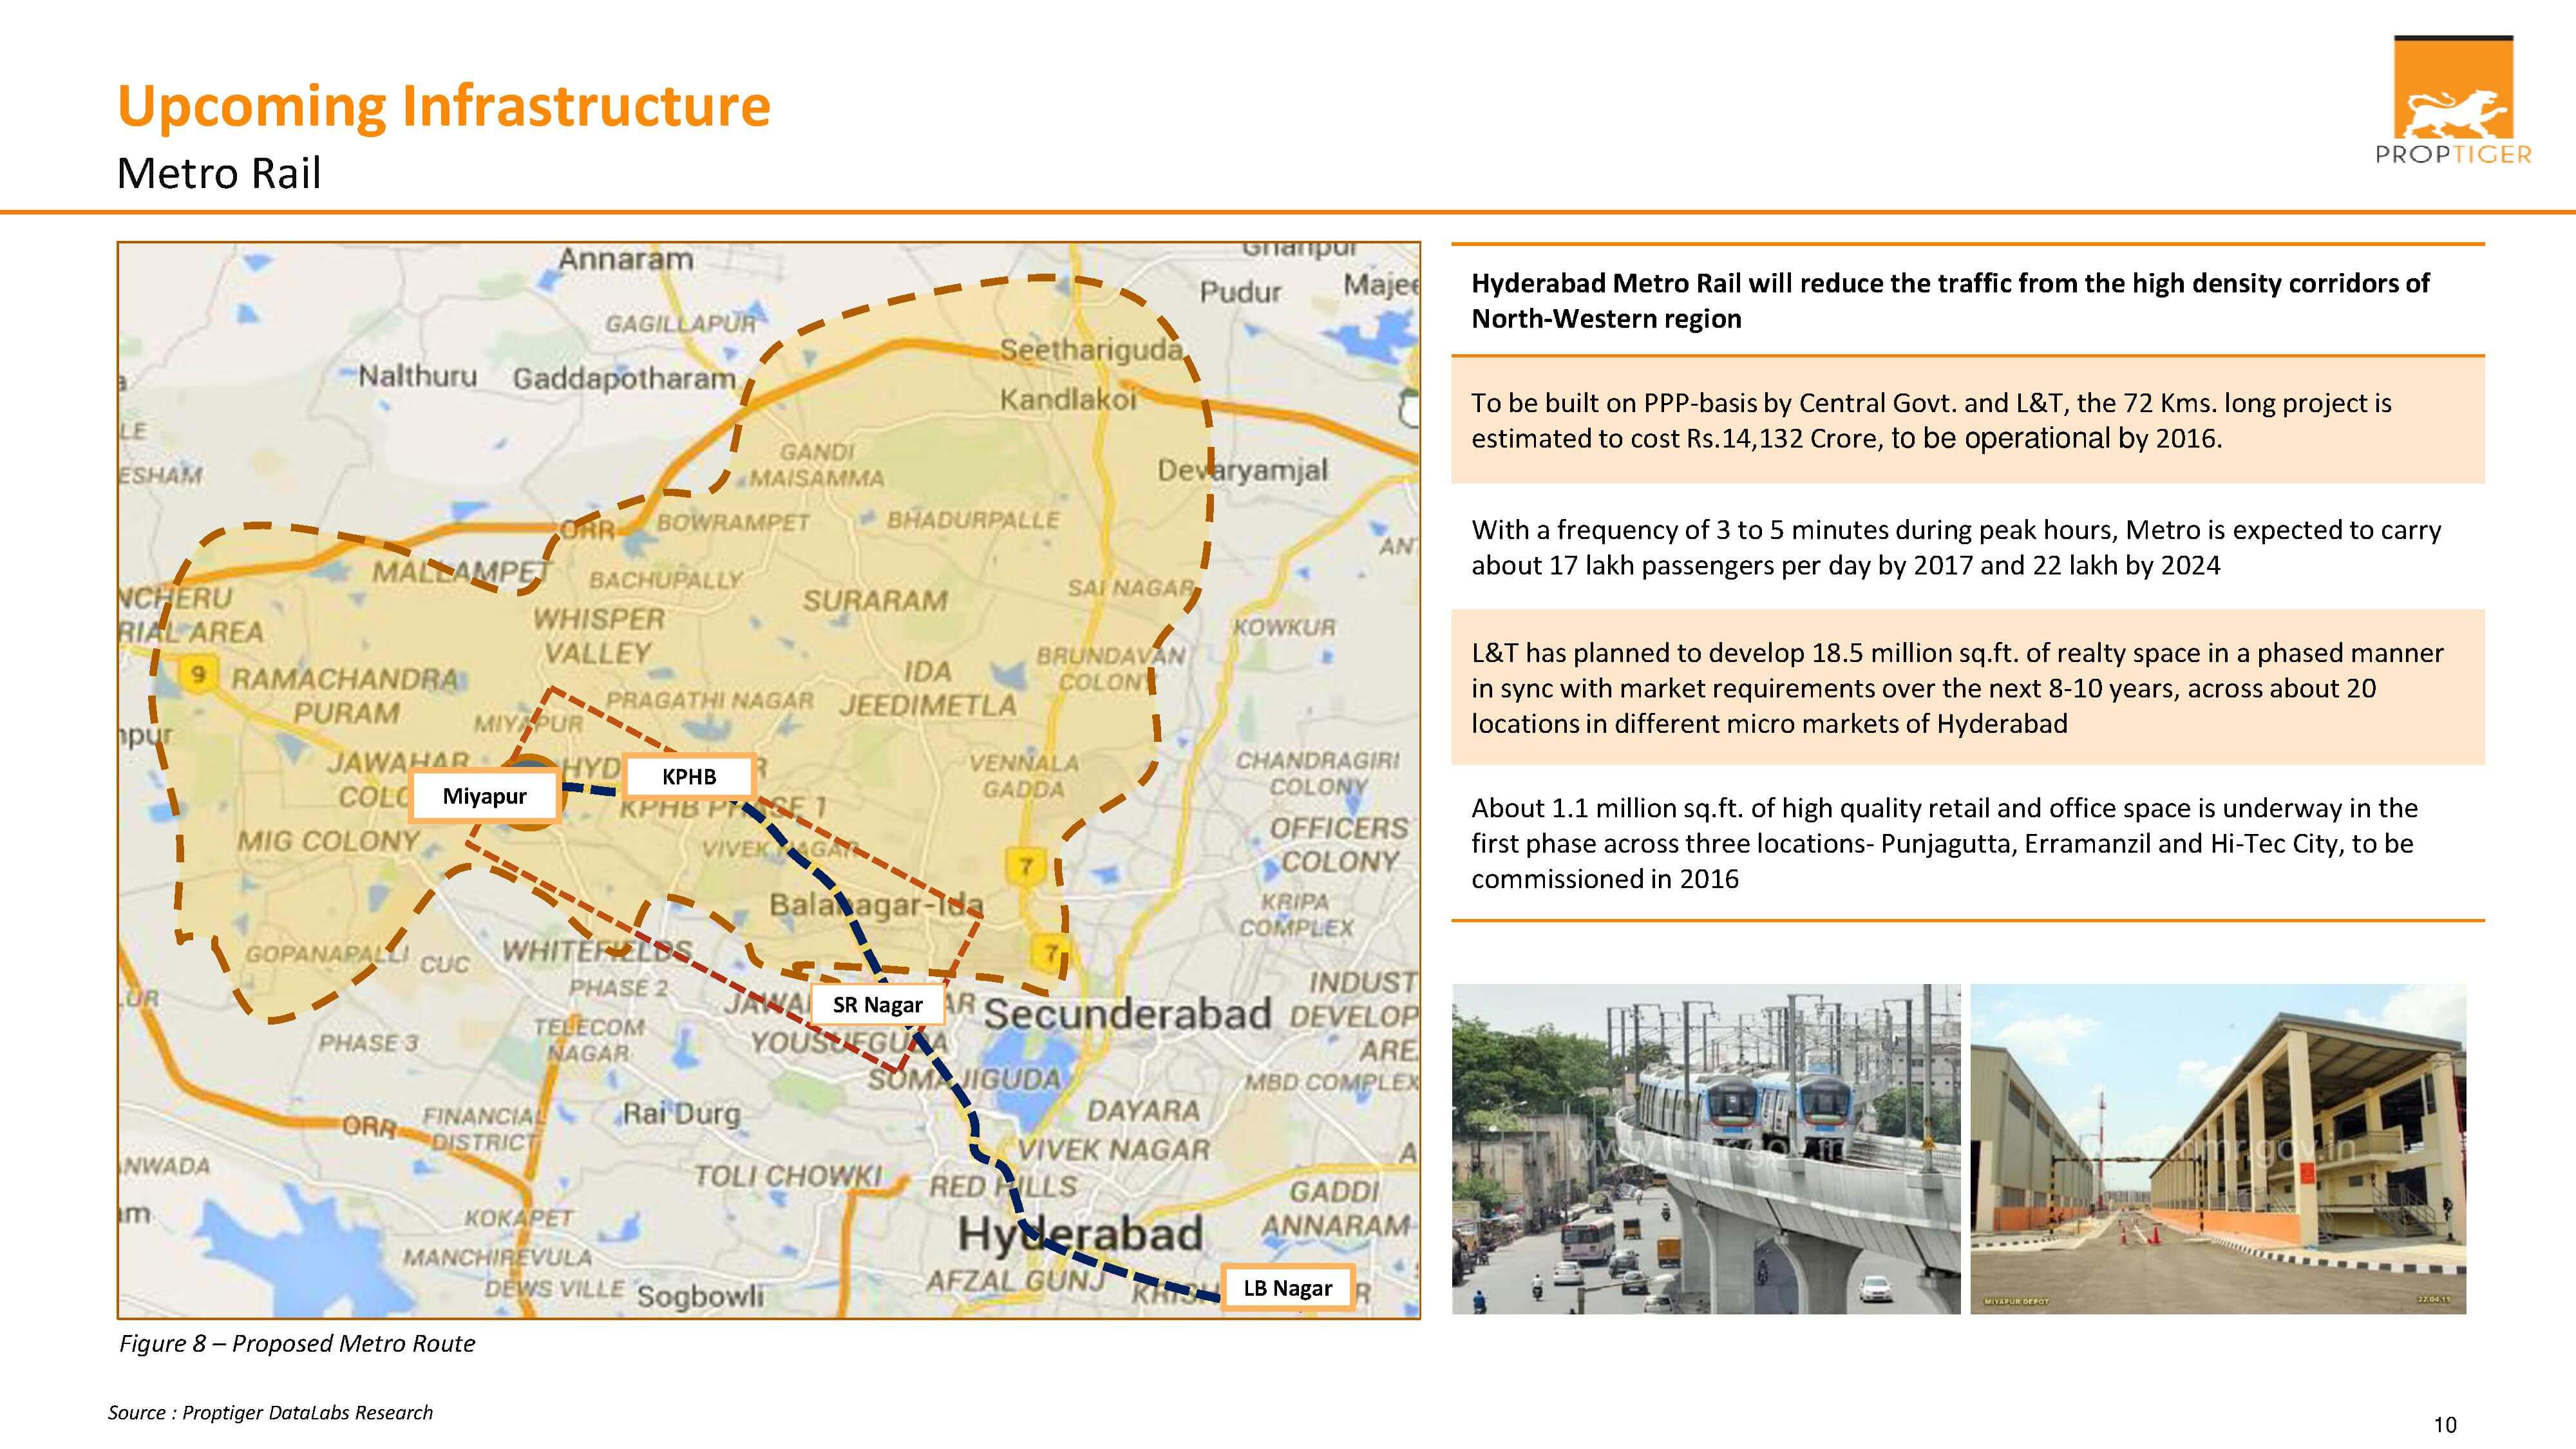 Upcoming Infrastructure - Metro Rail